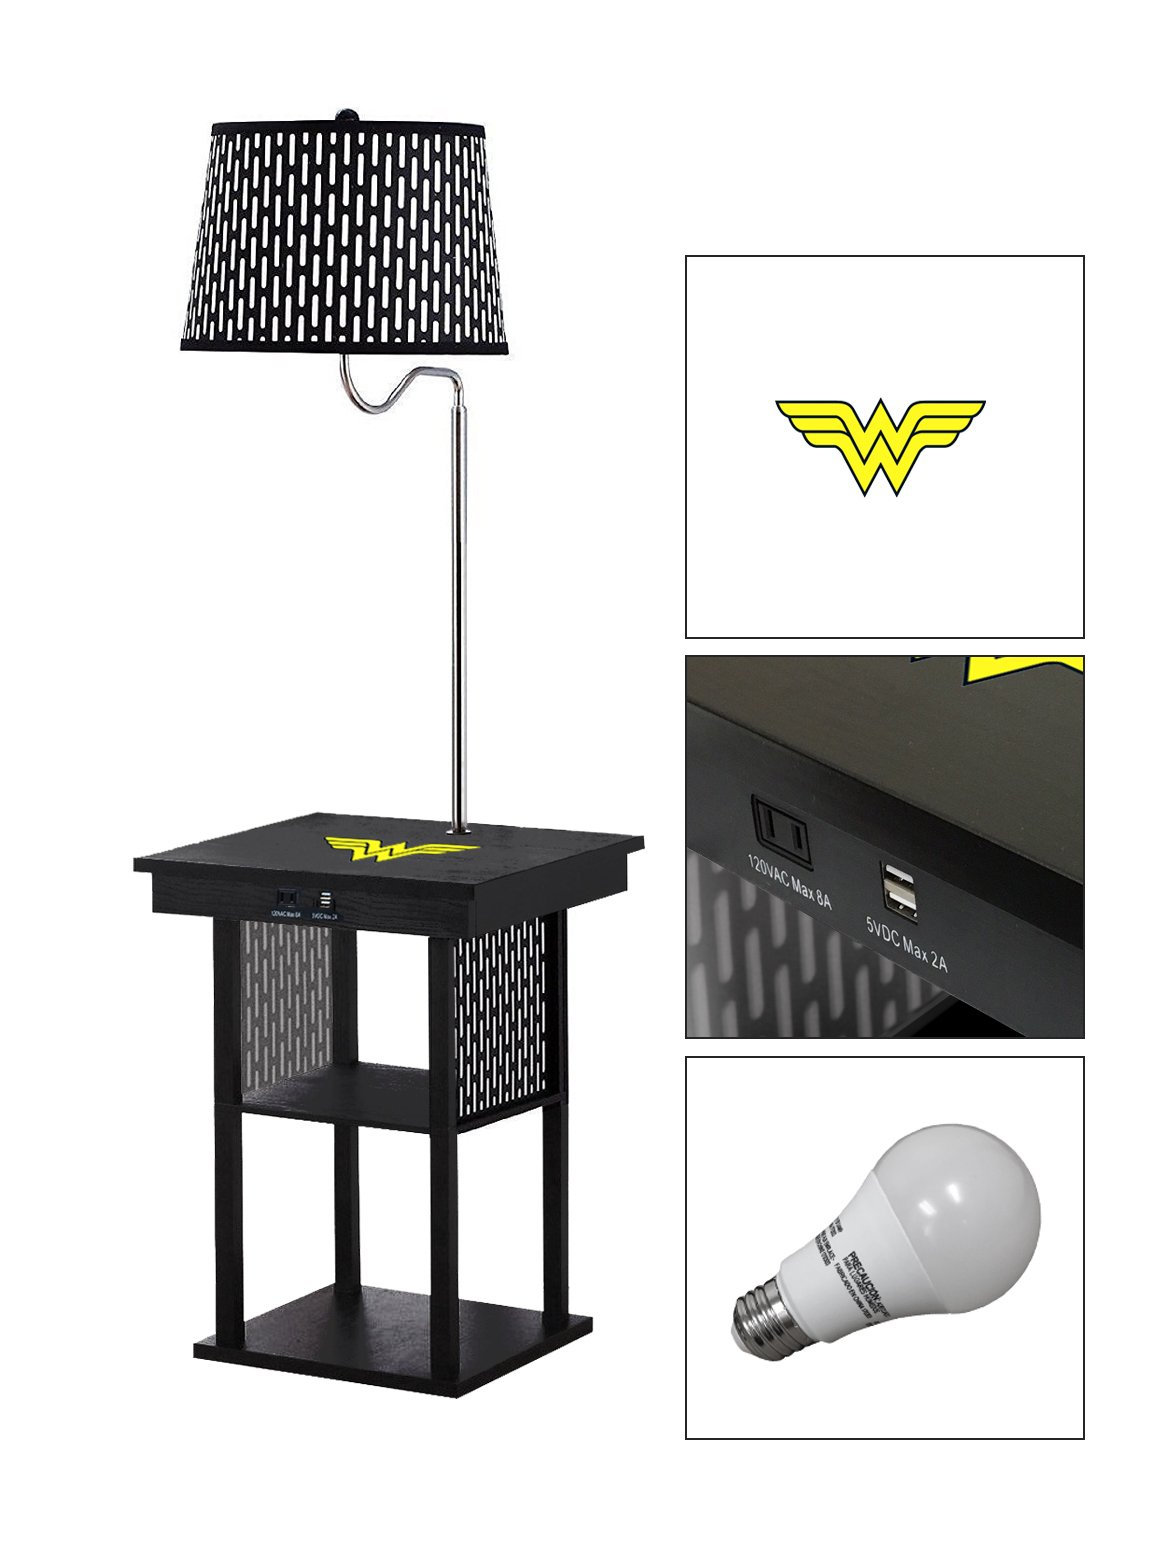 Black Side End Table USB Ports Electric Outlet Built-In Lamp Featuring a Novelty Themed Logo-FREE LED BULB(Wonder Woman) by The Furniture Cove